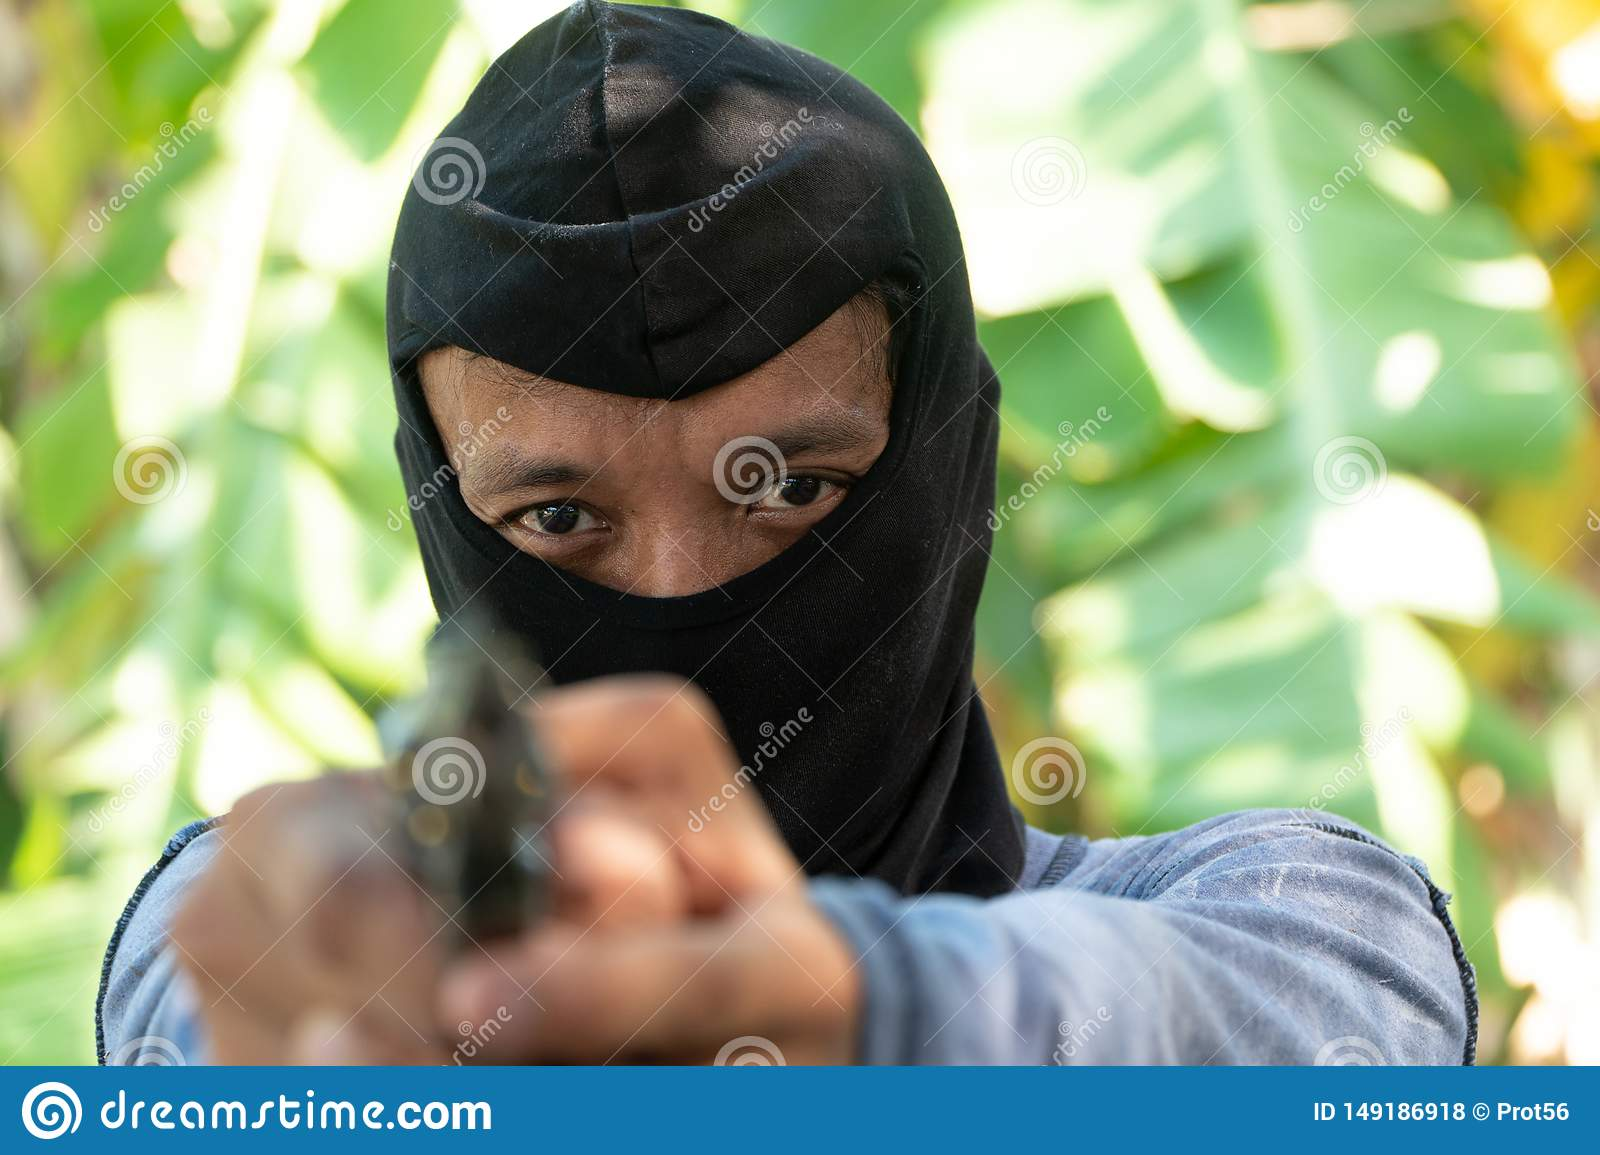 Select focus of crime eyes. Robber in black ski mask aims with gun